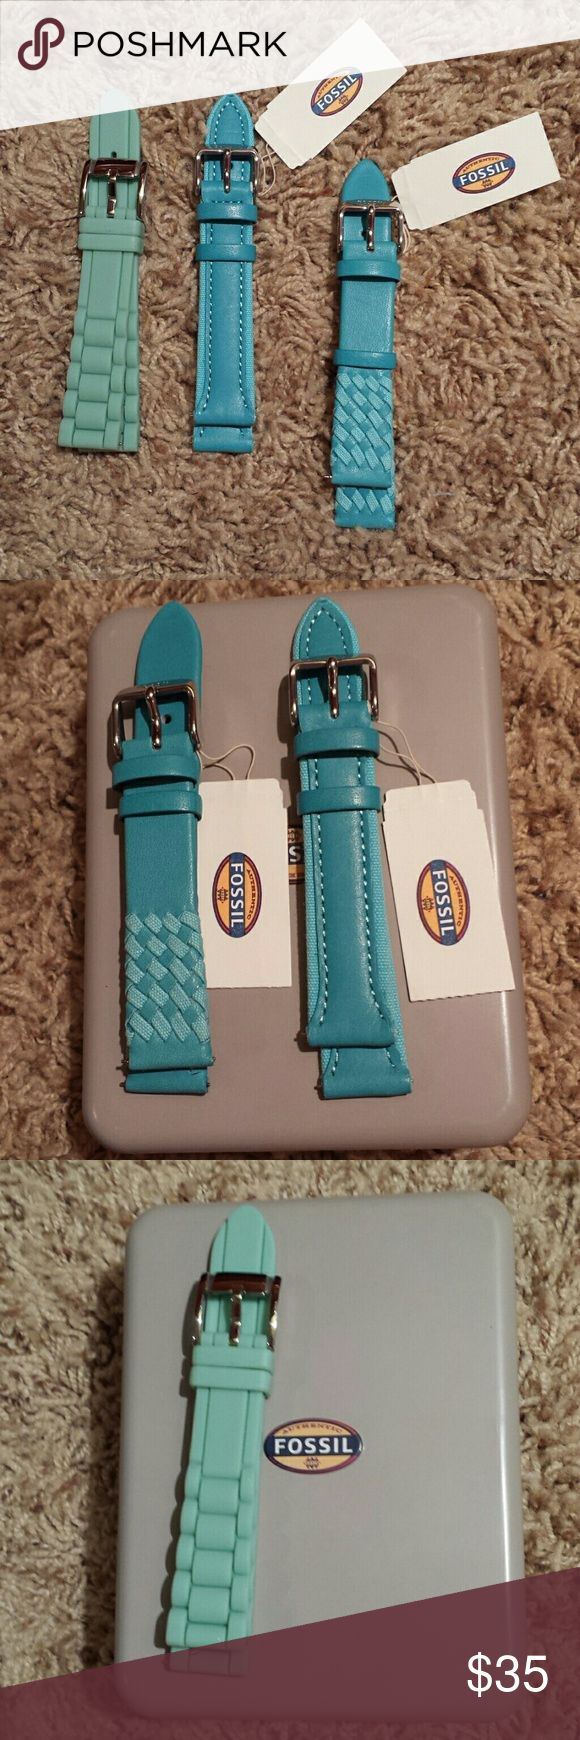 Fossil watch straps 18 mm watch straps. The two blue ones are leather and the mint green is silicone. Leather straps are new with tags and silicone has been worn once. $15 each or all 3 for $35. Let me know if I can answer any questions or make separate listings! Fossil Accessories Watches